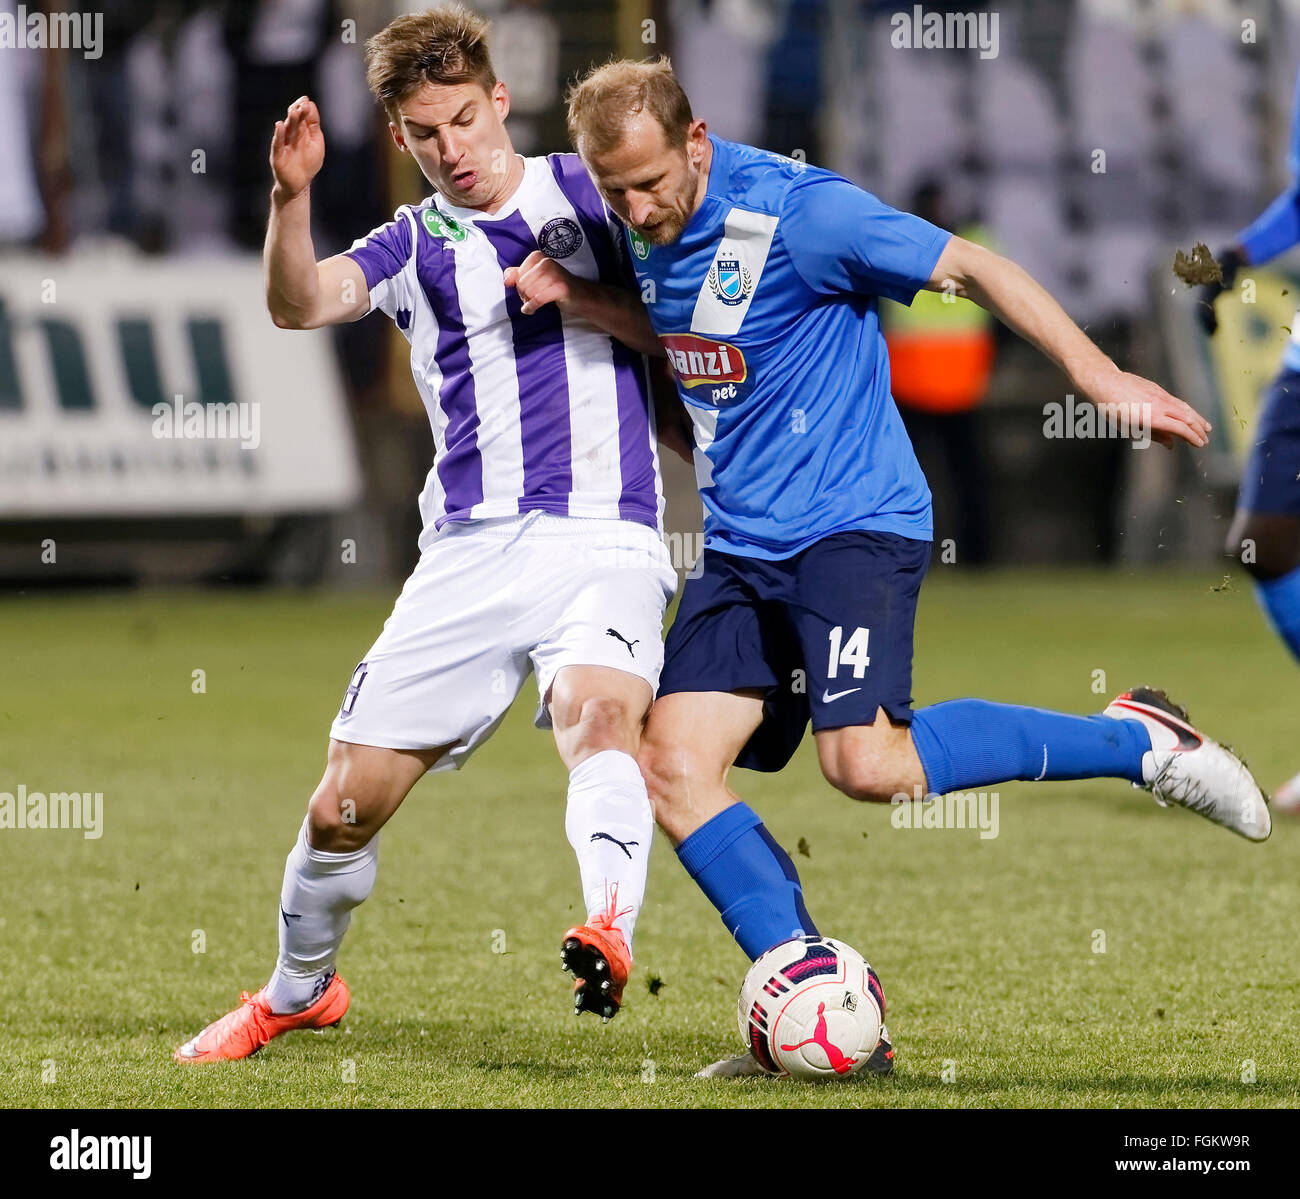 Budapest, Hungary. 20th February,  2016. Balazs Balogh of Ujpest (l) tries to stop Sandor Torghelle of MTK during - Stock Image